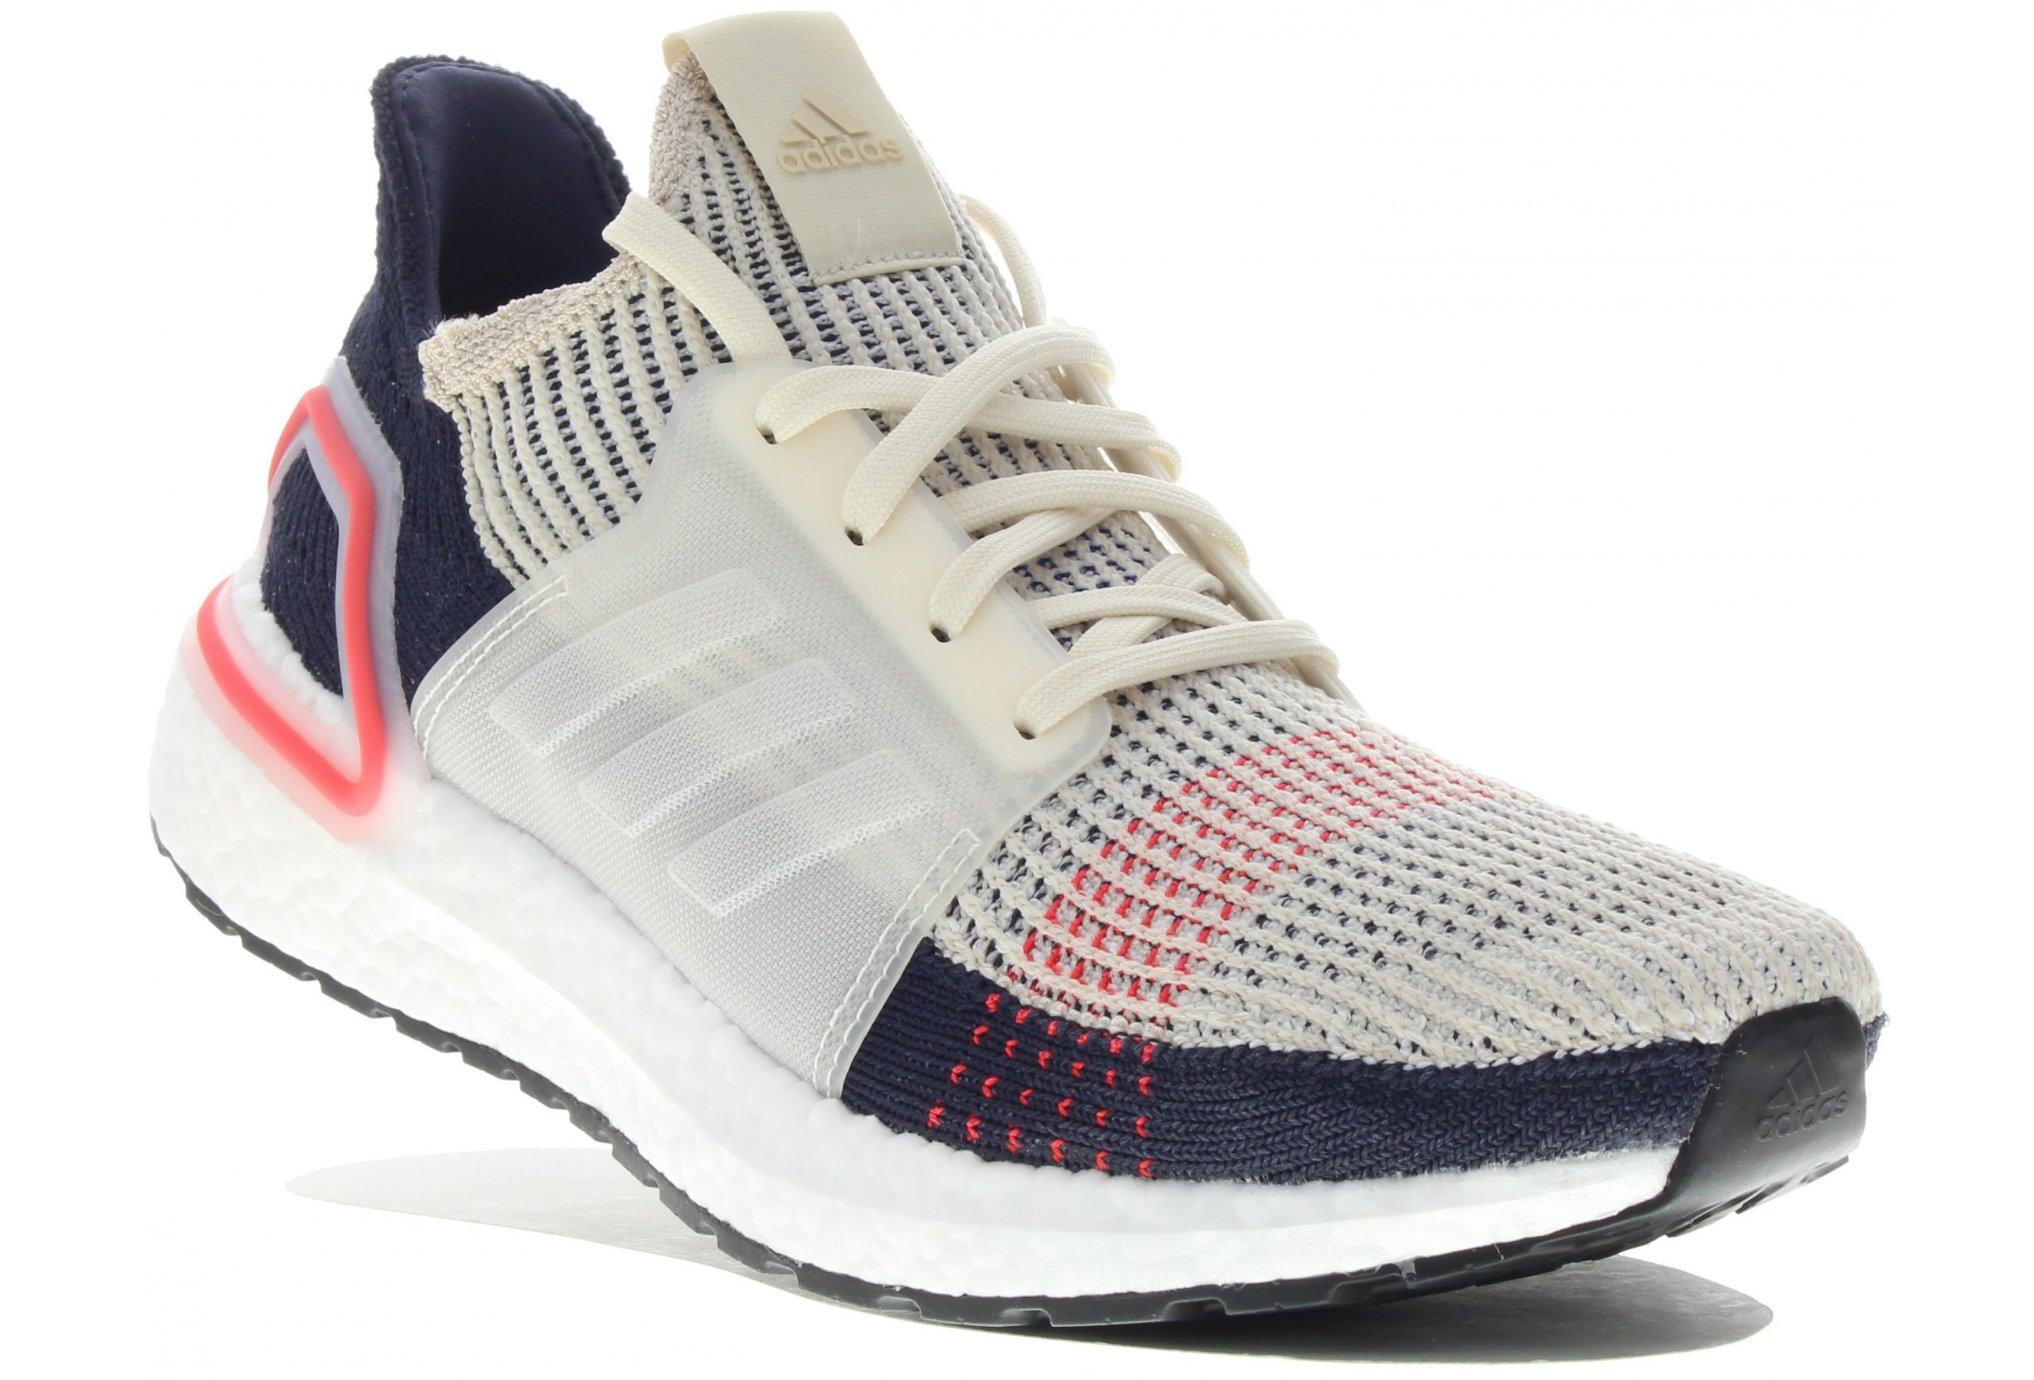 adidas UltraBOOST 19 Recode Chaussures homme